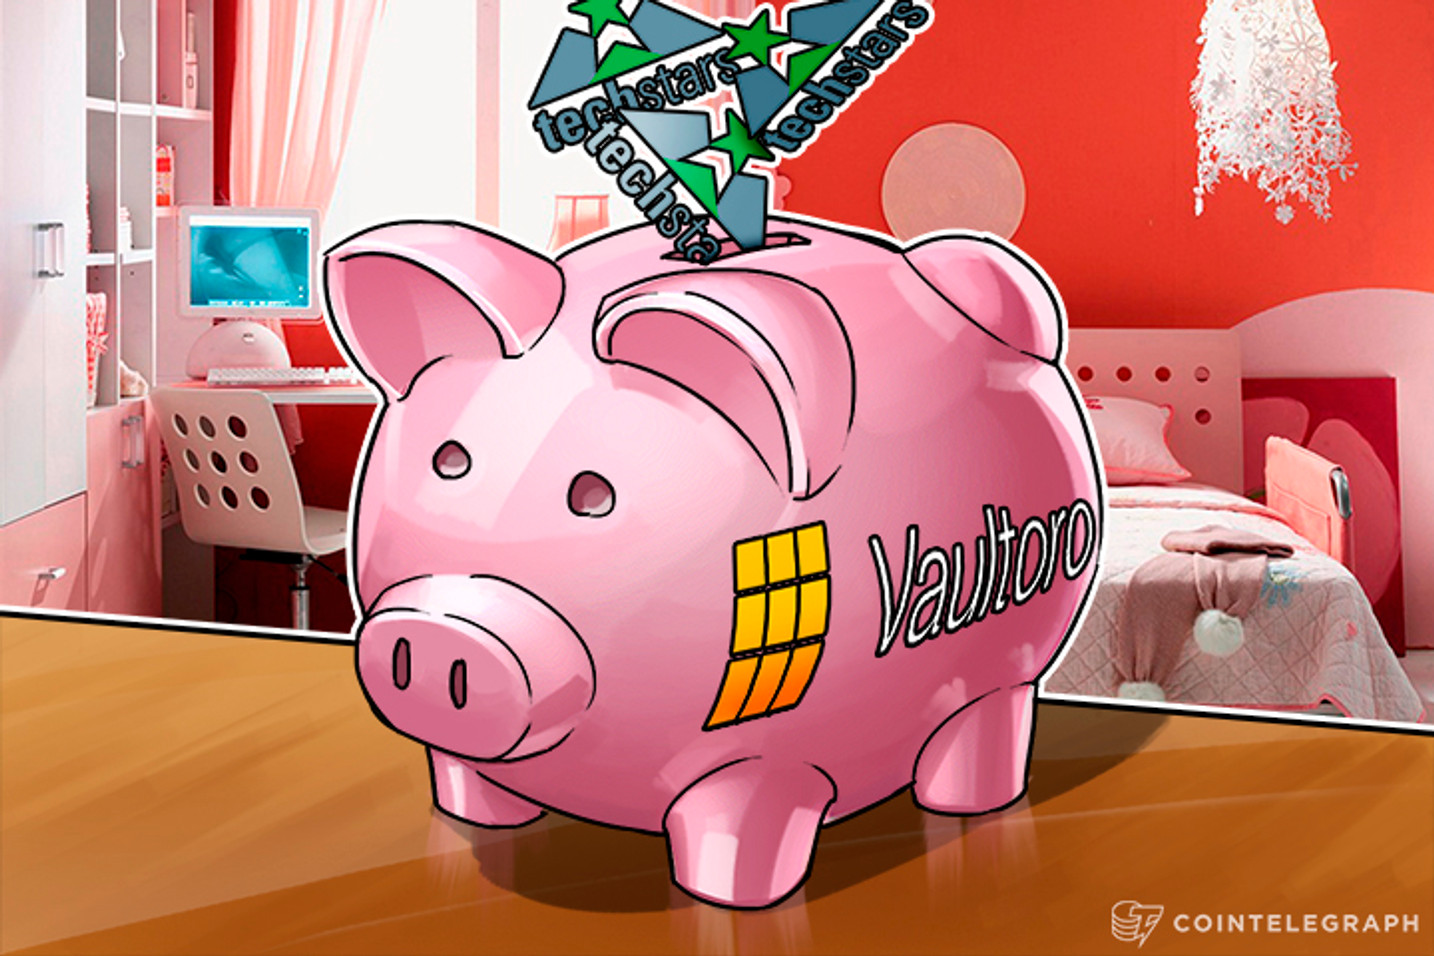 Techstars Berlin Invests in Bitcoin Gold Exchange Vaultoro